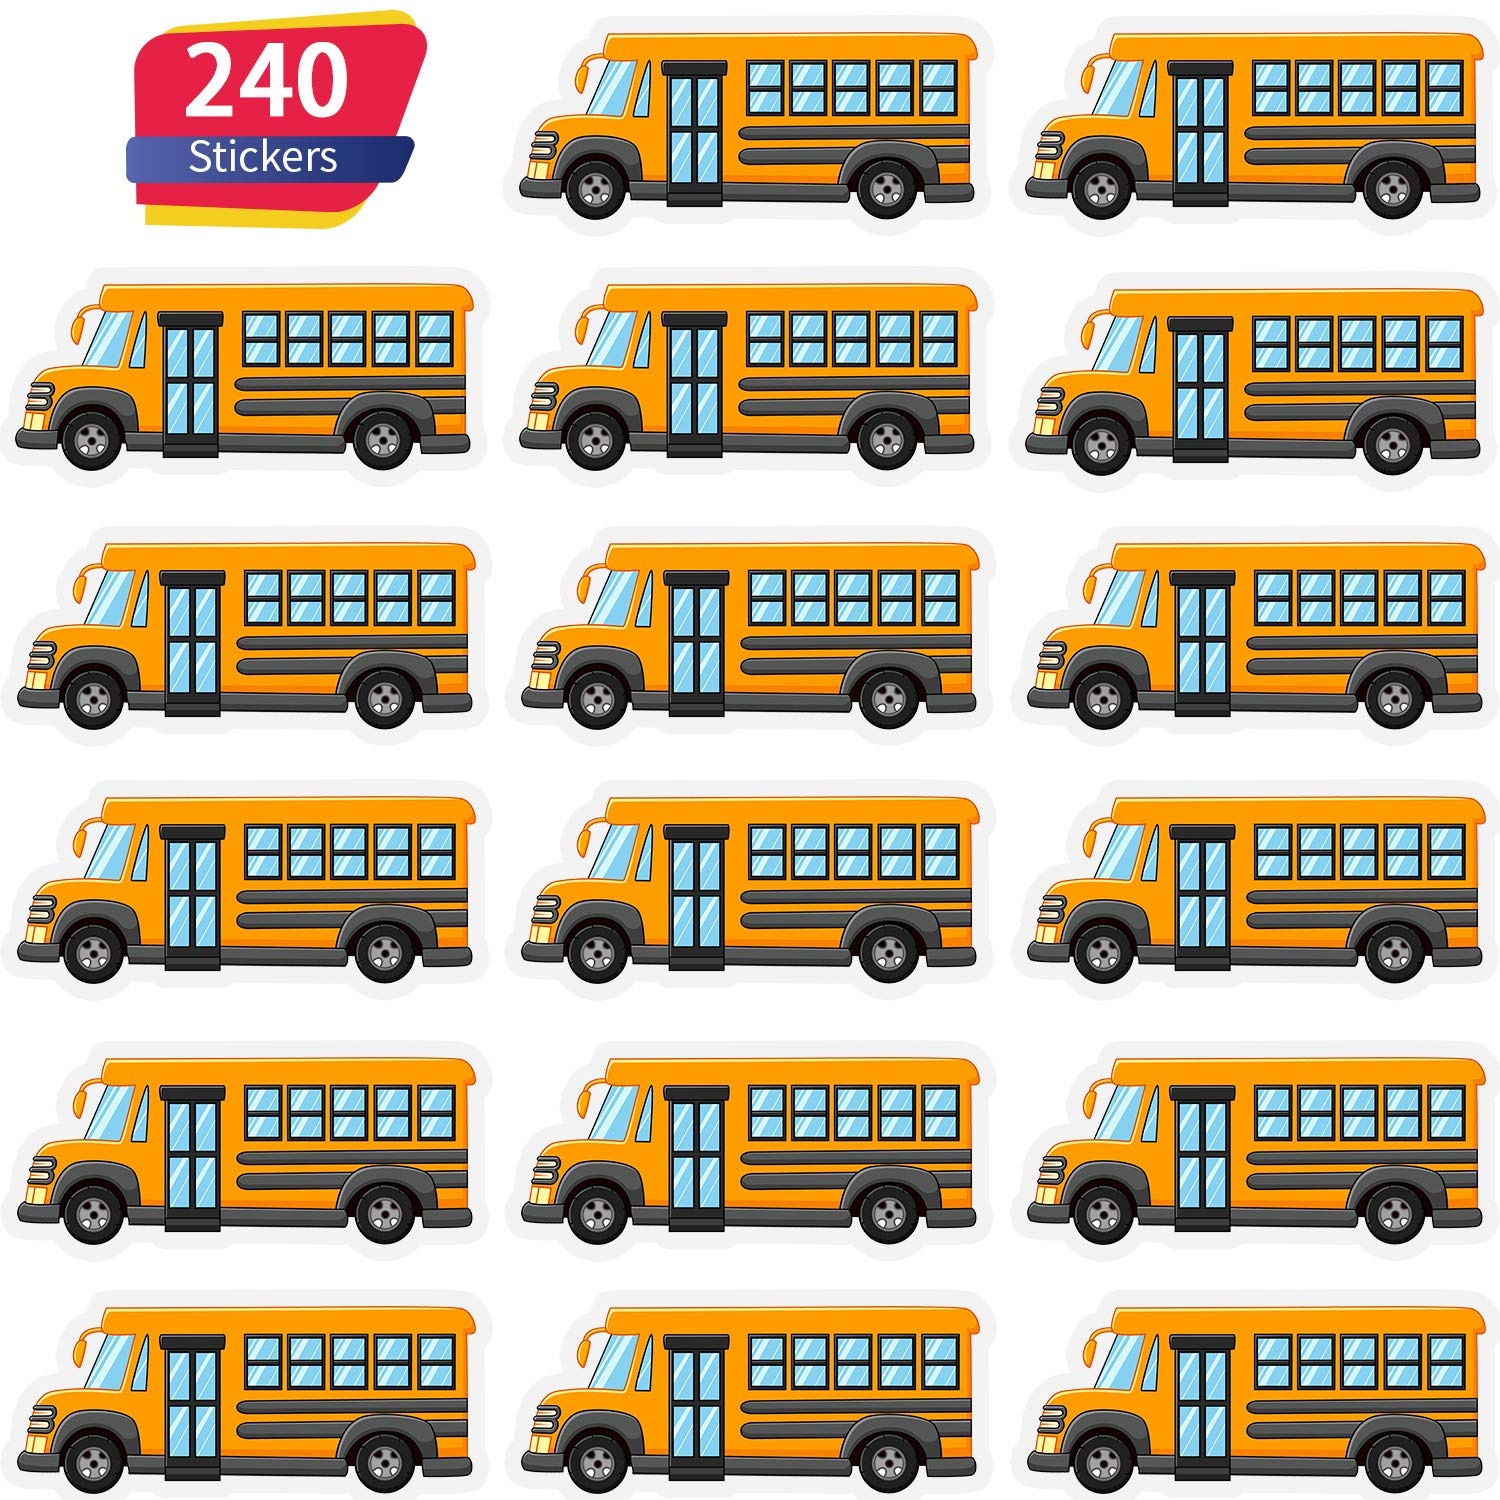 School Bus Stickers Mini Yellow Bus Stickers for Scrapbooking, Calendars, Kids DIY Arts and Crafts, Album (12 Sheets)